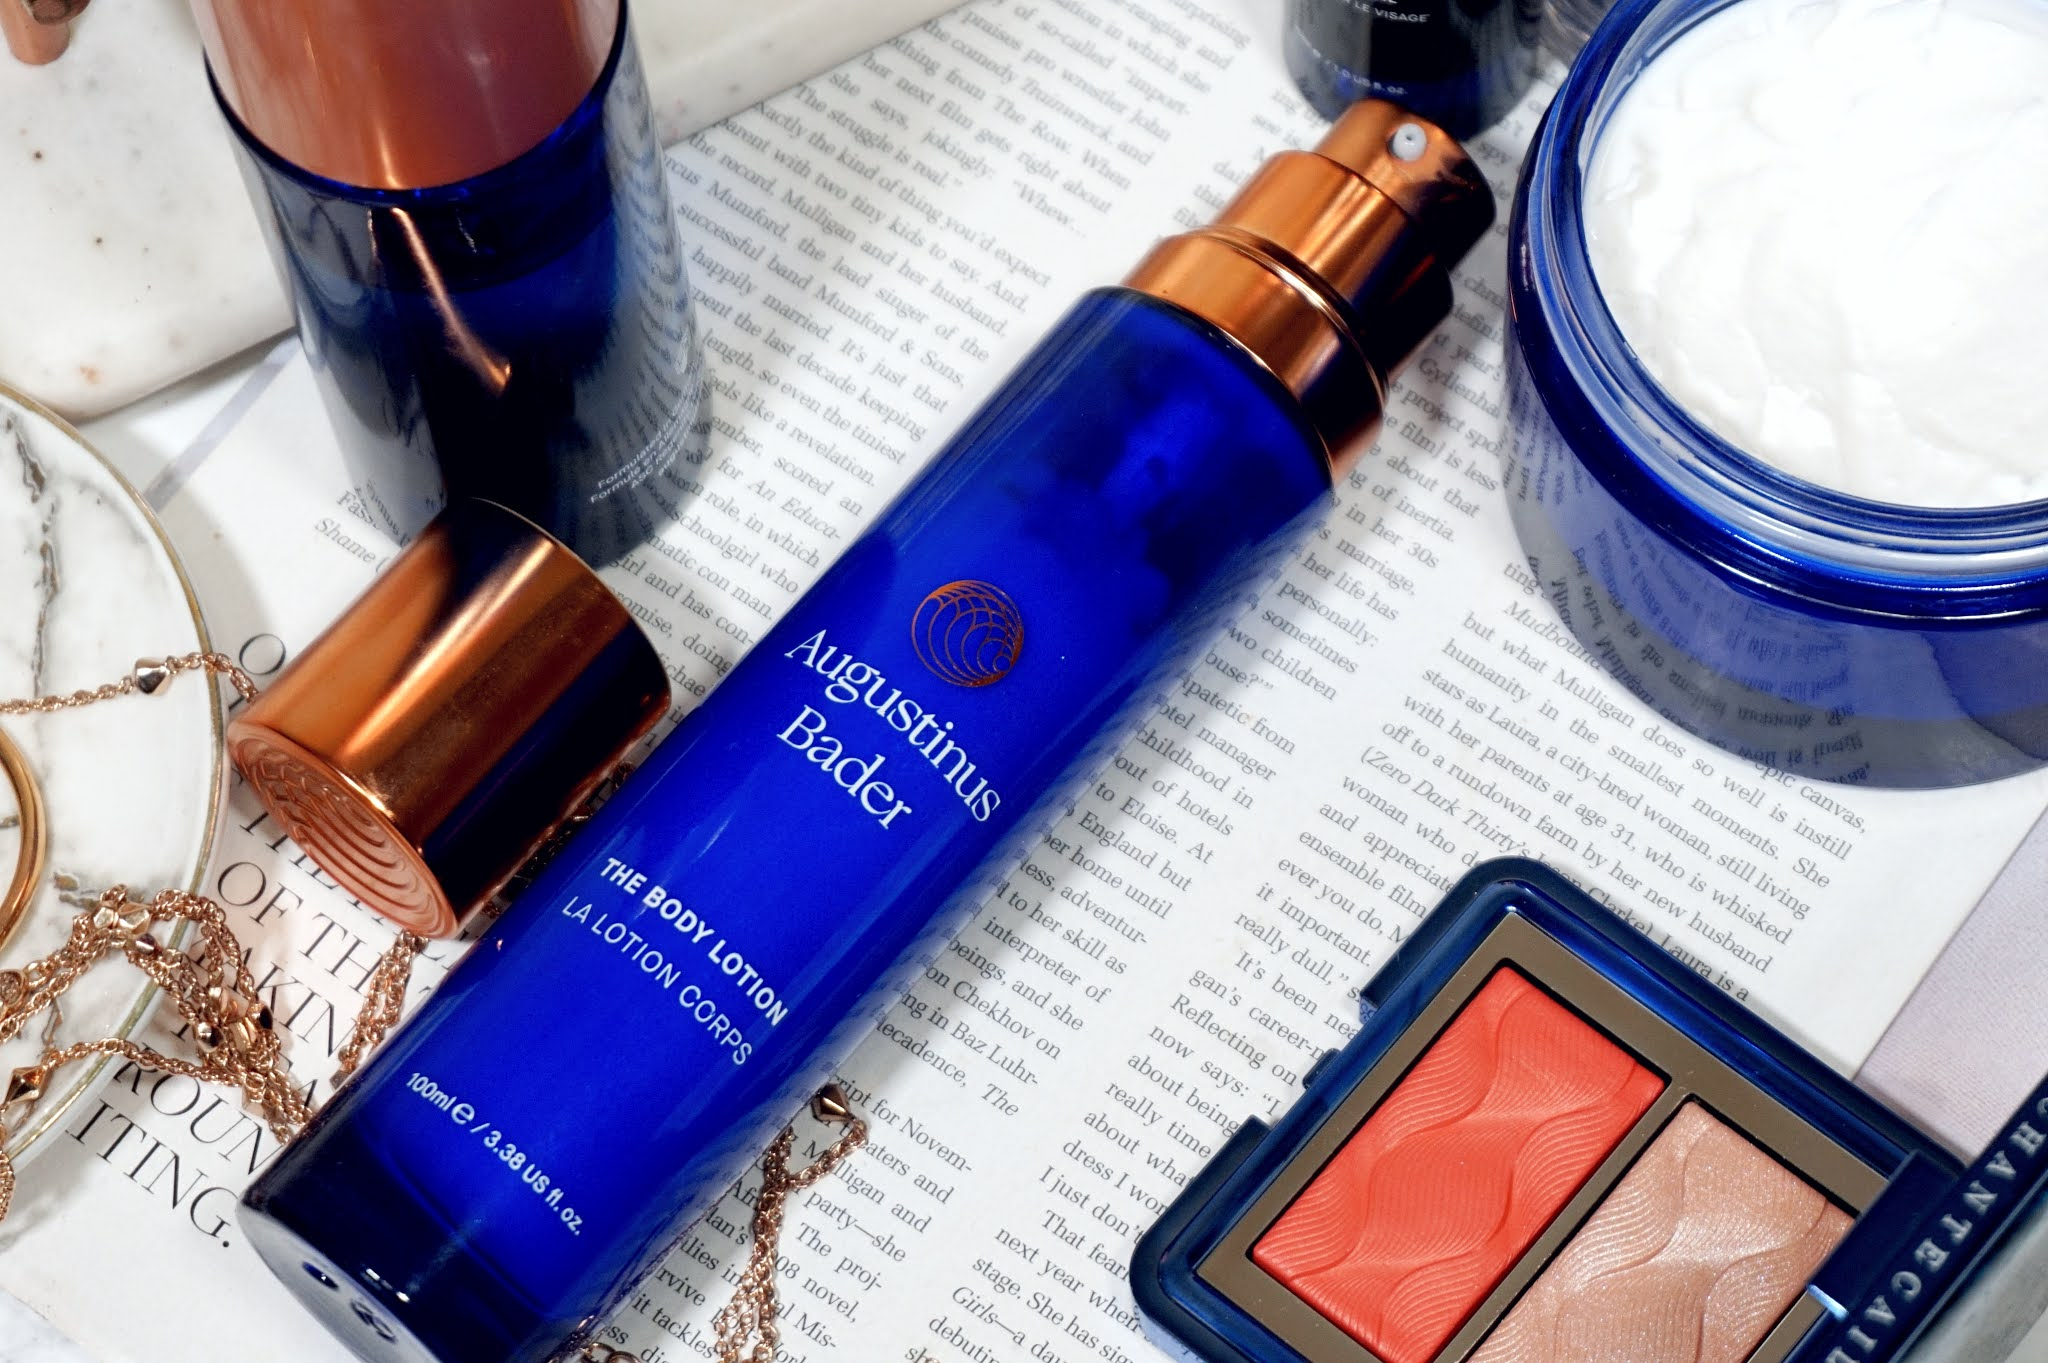 Augustinus Bader The Body Lotion Review